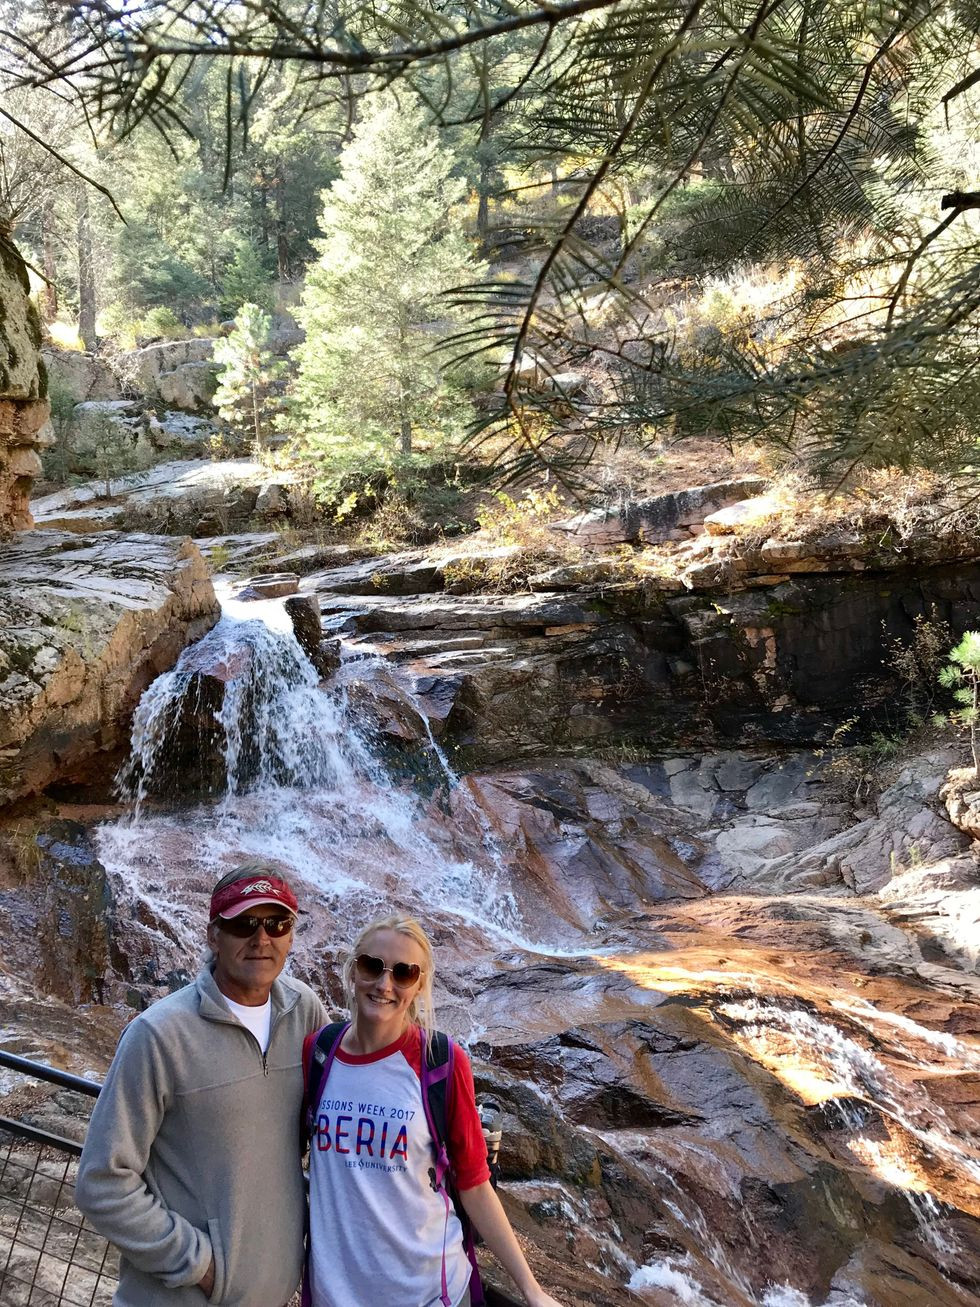 My dad and I hiking